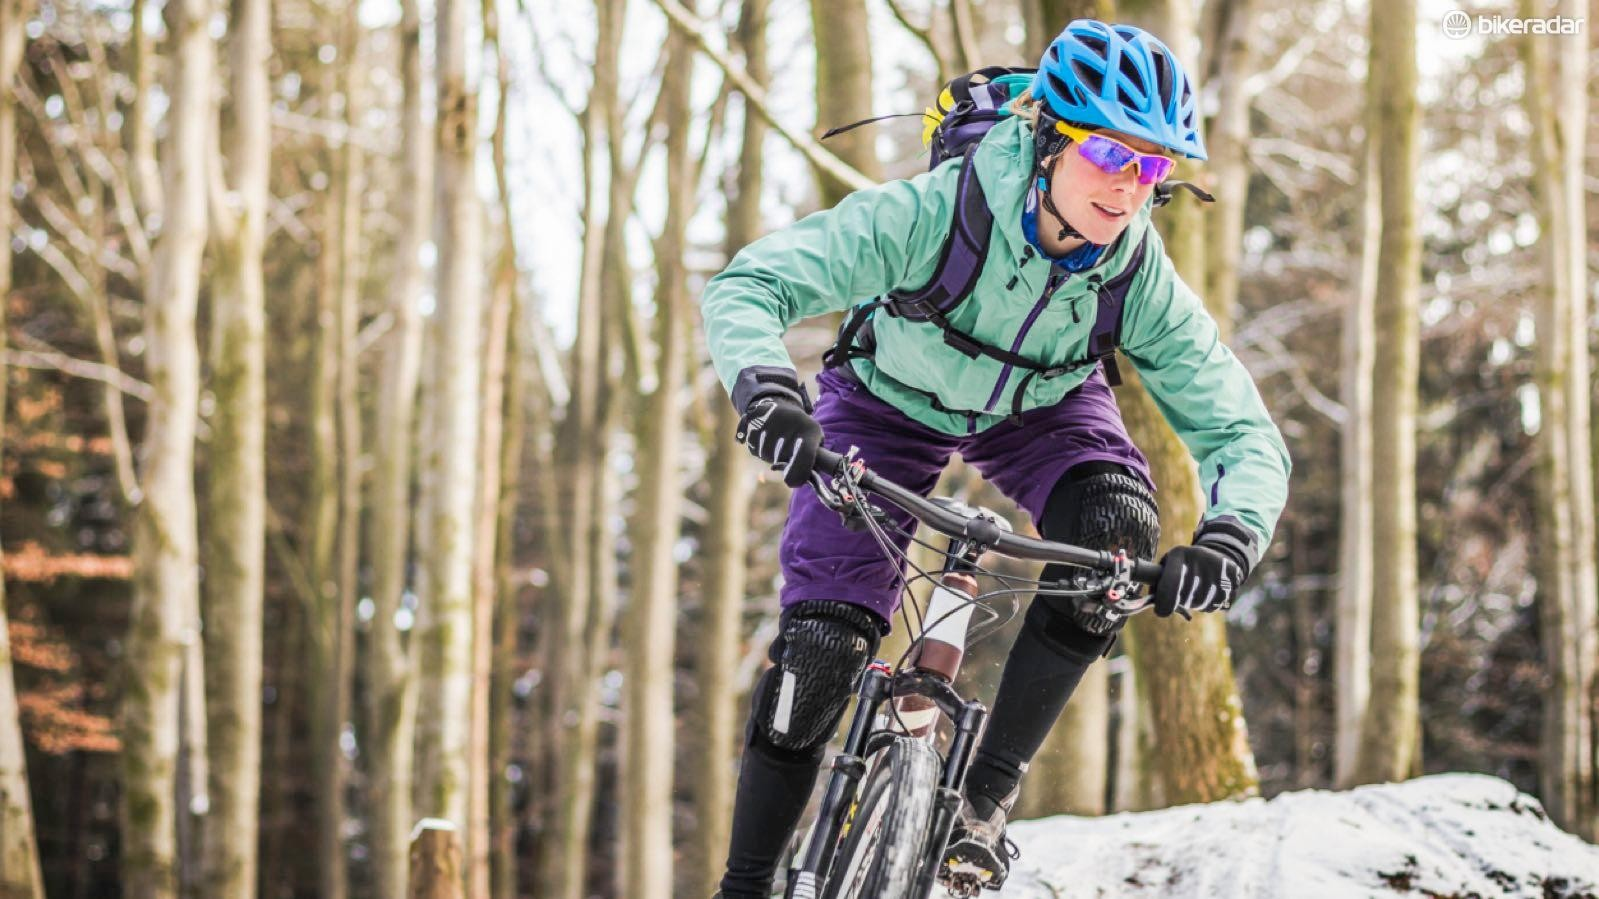 Mountain bike riding is a great option in the winter